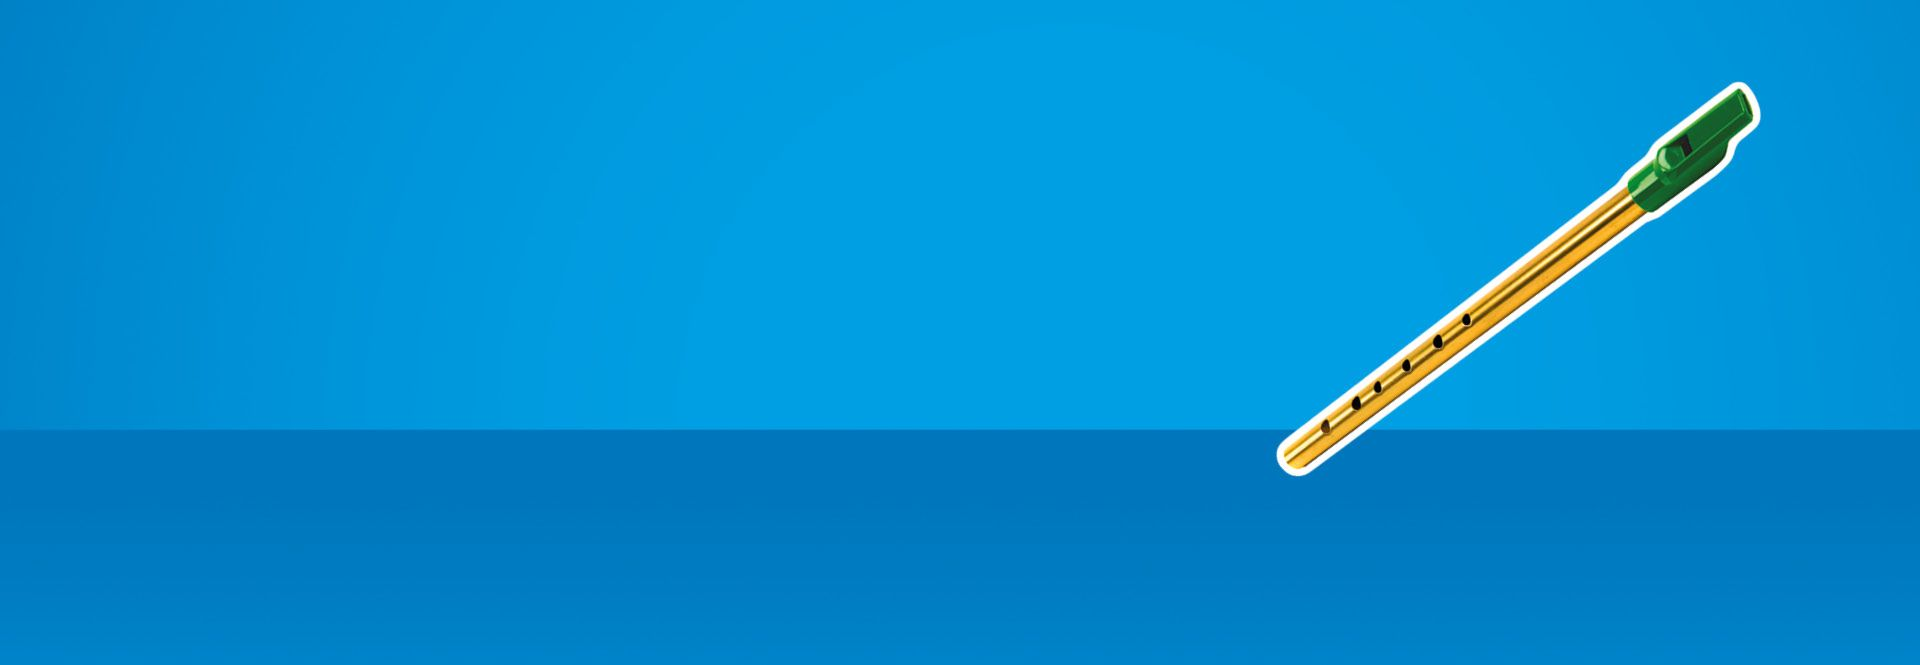 Barclaycard credit cards online banking barclaycard 20 cashback with a 0 interest balance transfer for 24 months and no fee reheart Choice Image